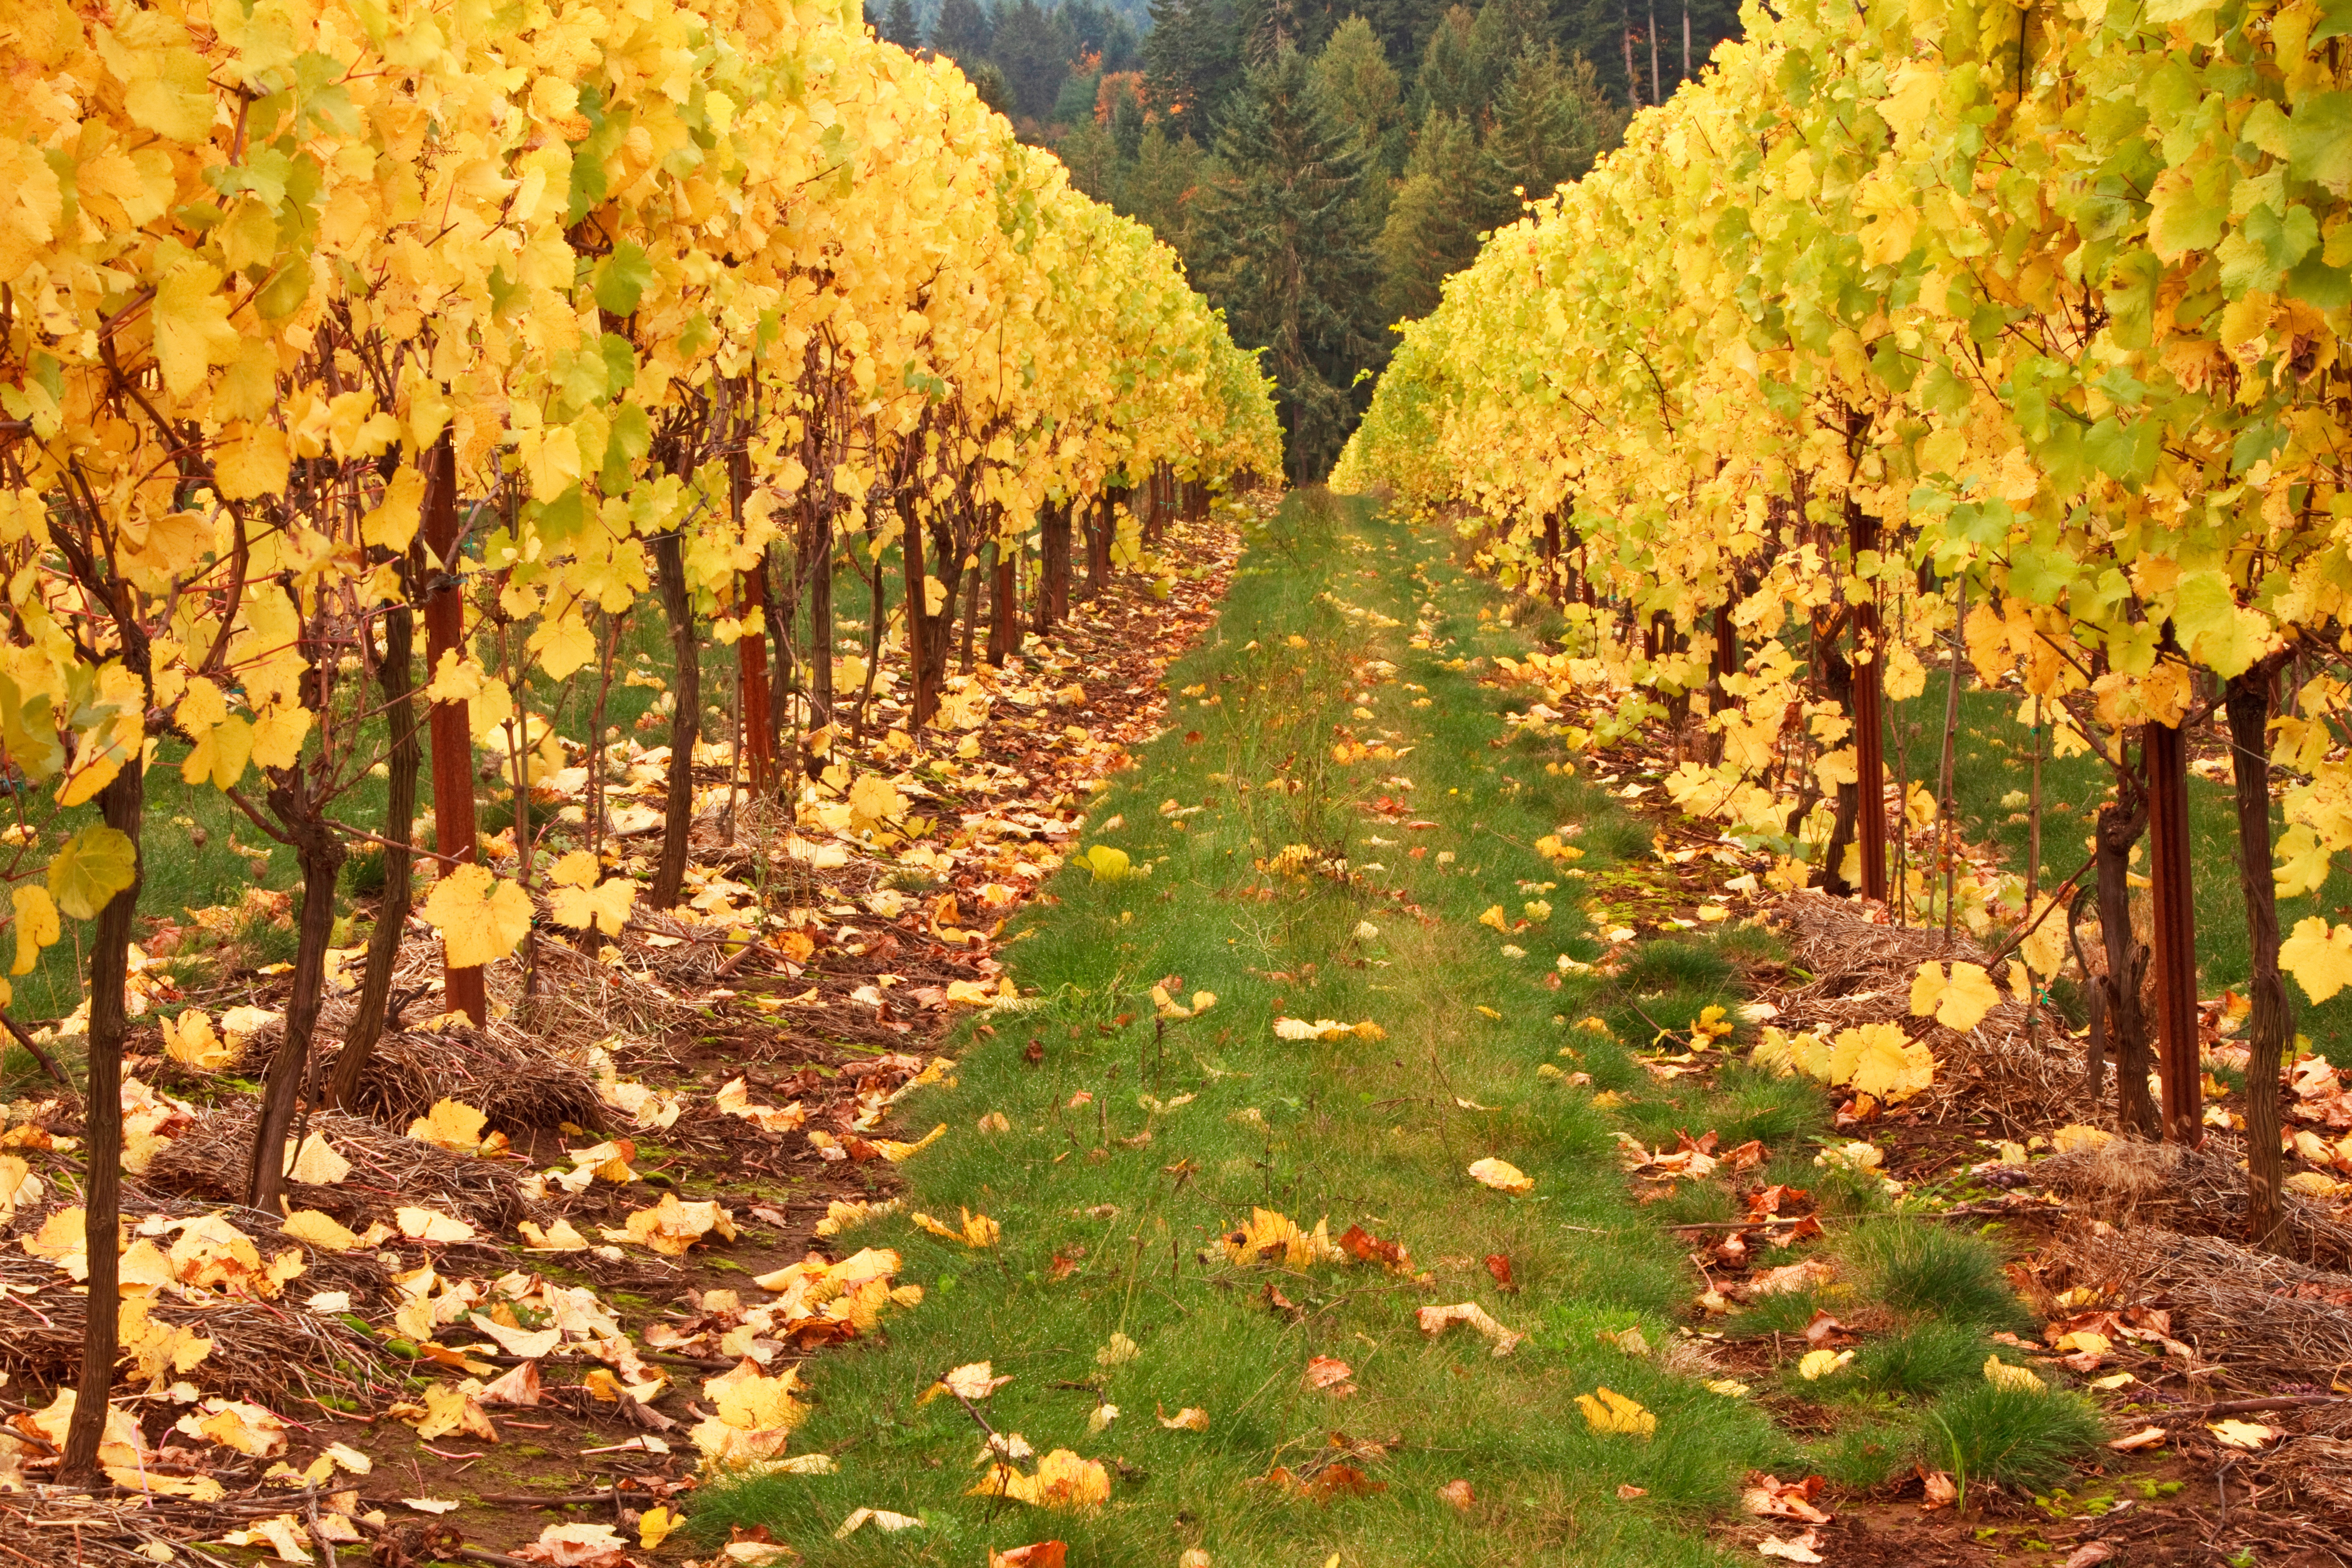 Iphone 6 Wallpaper Fall Leaves Vineyard 5k Retina Ultra Hd Wallpaper And Background Image